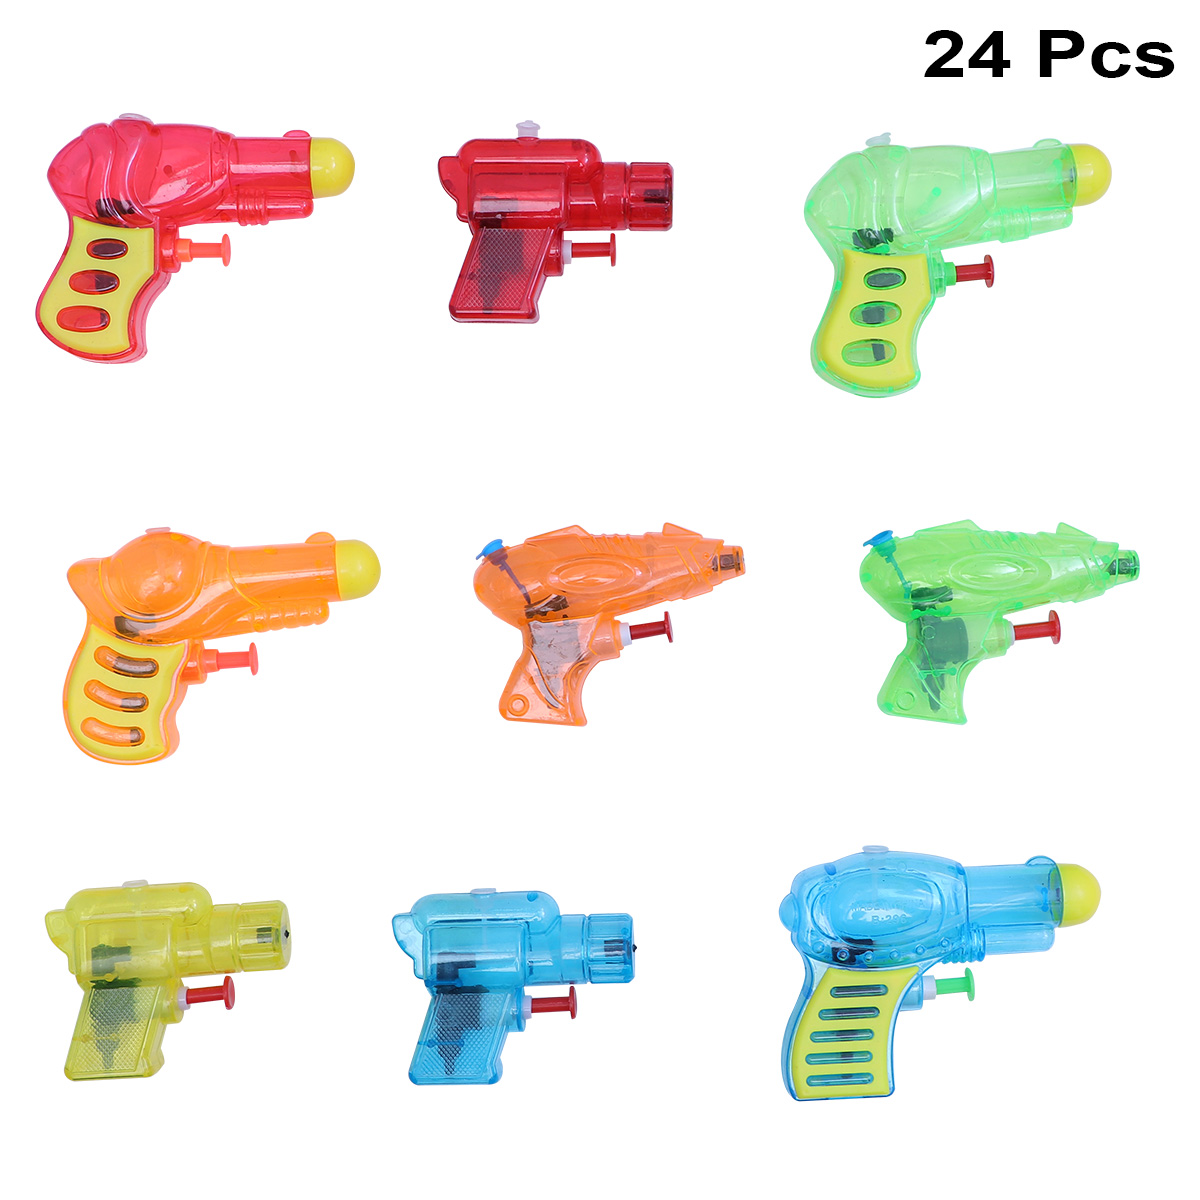 24pcs Water Gun Water Playing Portable Convinent Small Pressure Water Gun for Playing